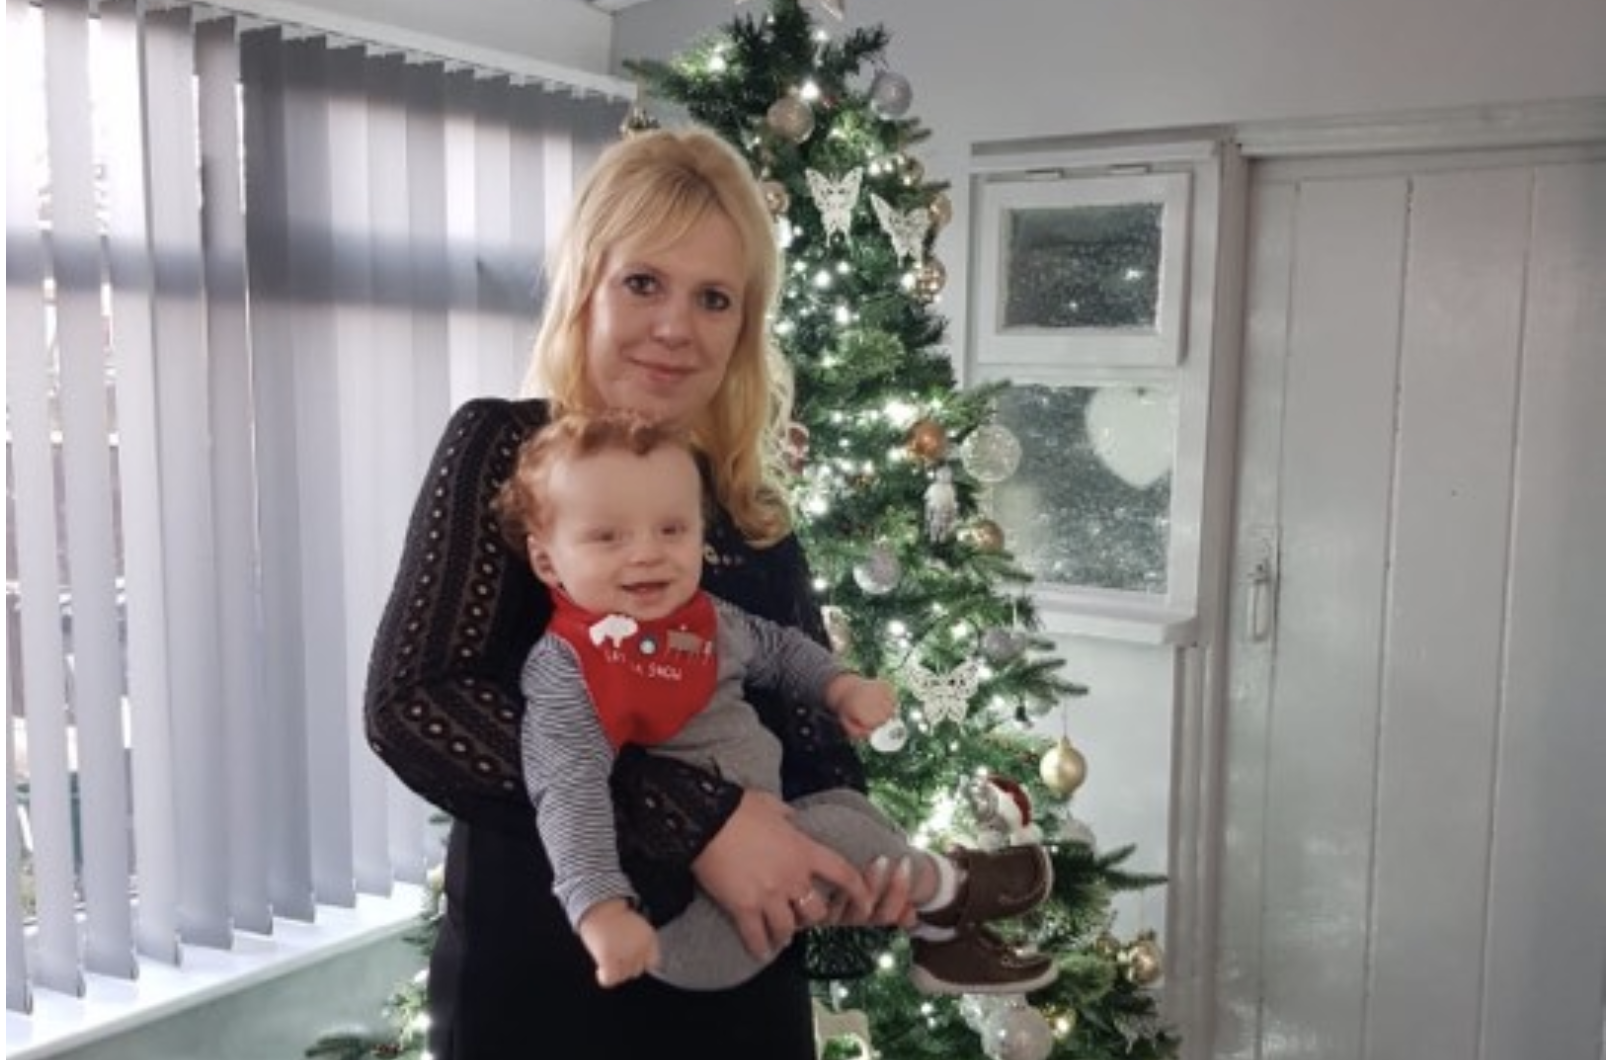 Parents Hoping For Better Christmas This Year After One-Day Old Son Faced Major Surgery A Year Ago